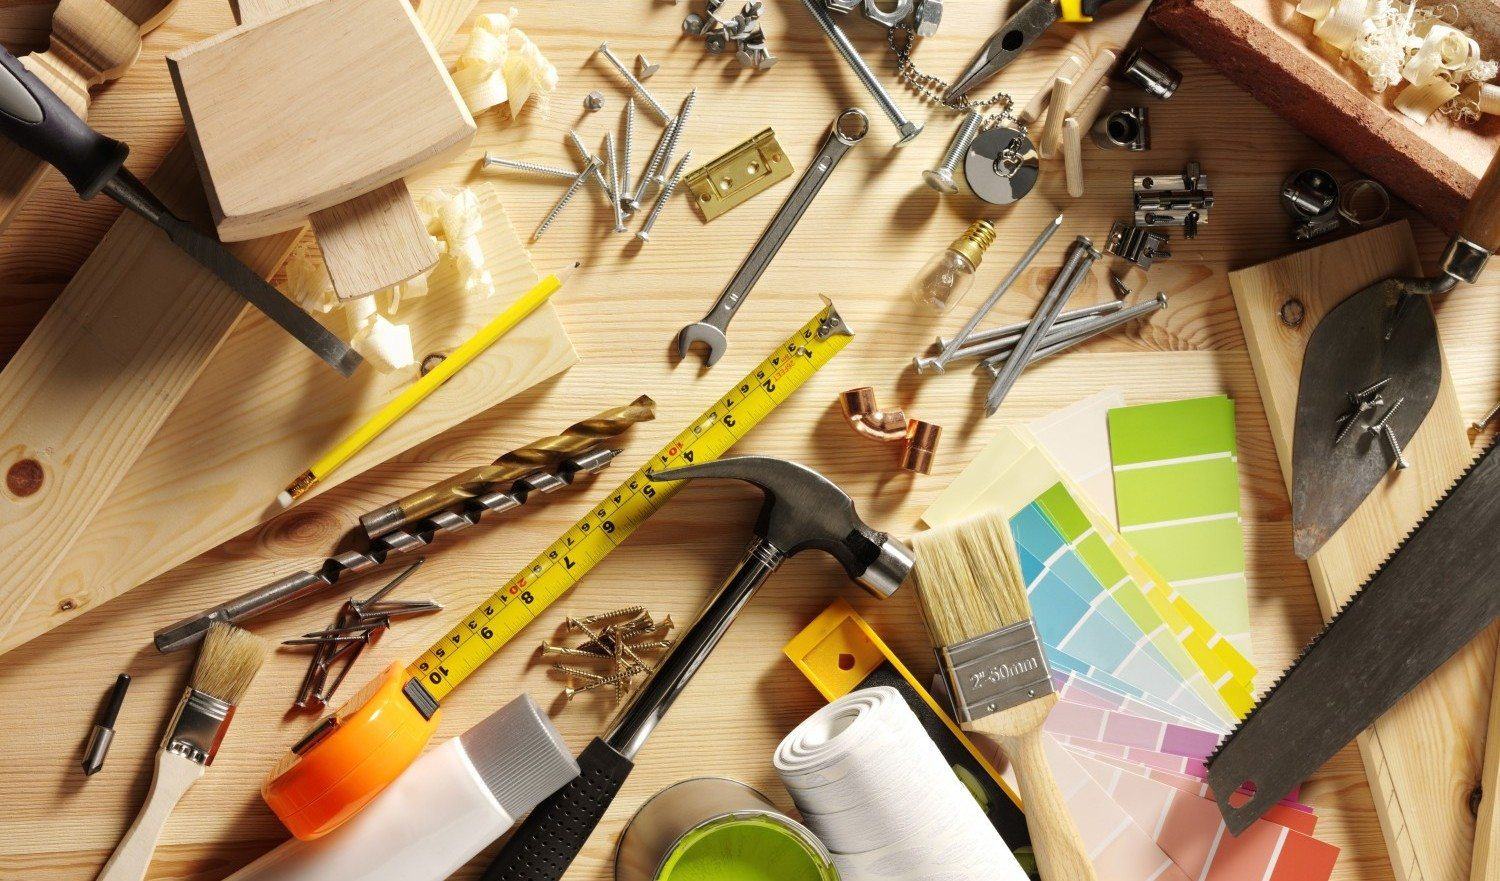 """Work tools and products such as a spanner and screws, hinges, sink plug, screws, raw plugs, jubilee clips, brass pipe and socket set pieces. Home decorating with paint, building bricks, wood, samples, hammer and many more tools for DIY on a wooden background. Overhead view.Click on the link below to see more DIY and Tool images."""